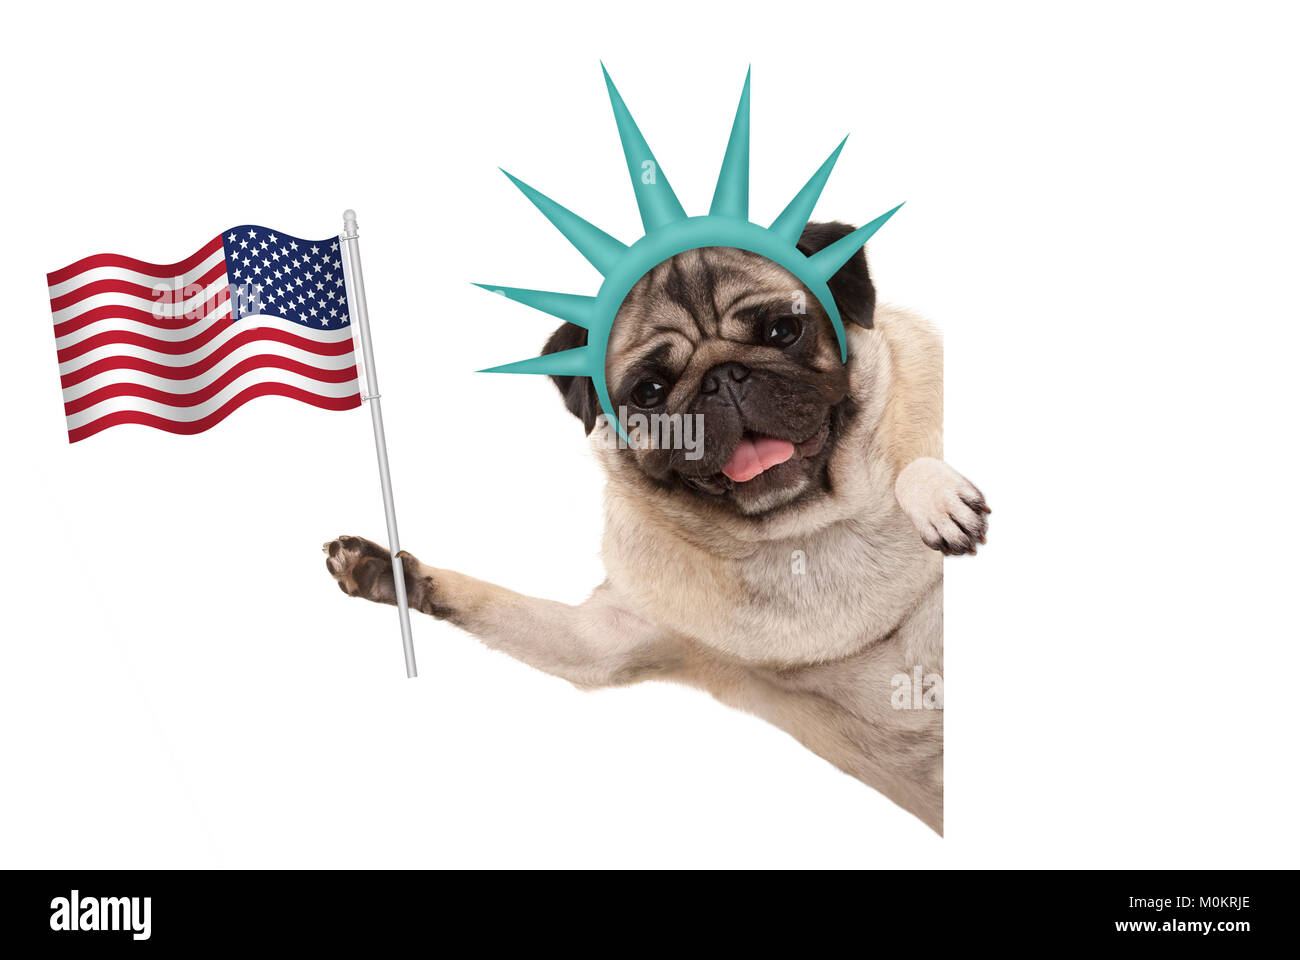 smiling pug puppy dog holding up American flag, sideways from white banner, wearing lady Liberty crown, isolated - Stock Image